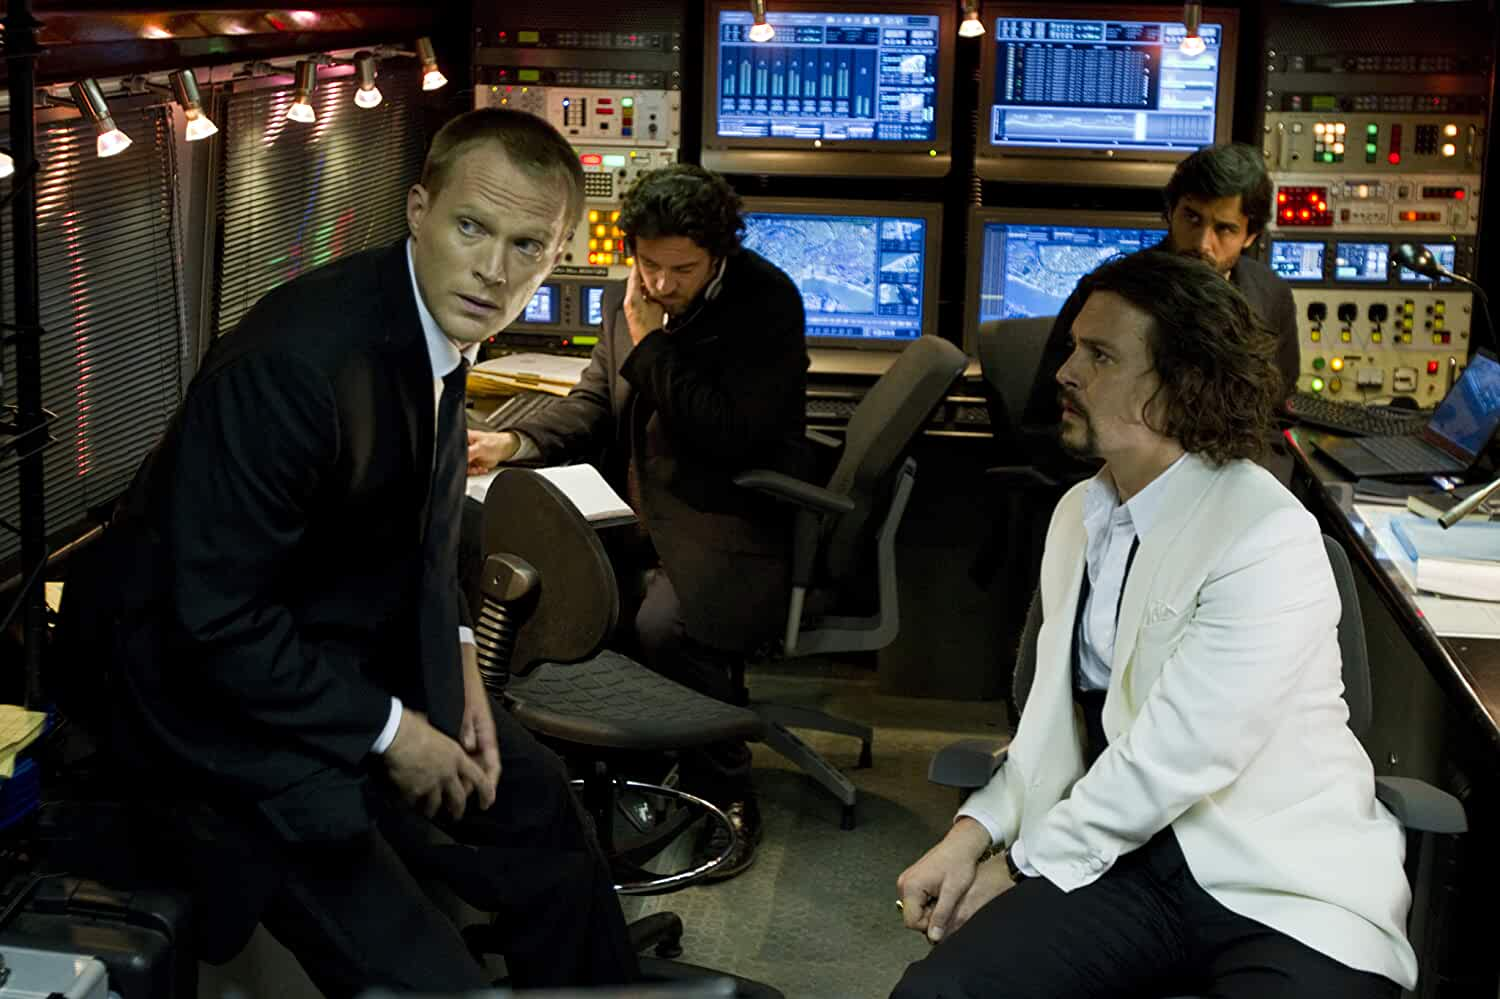 Johnny Depp and Paul Bettany in The Tourist (2010)